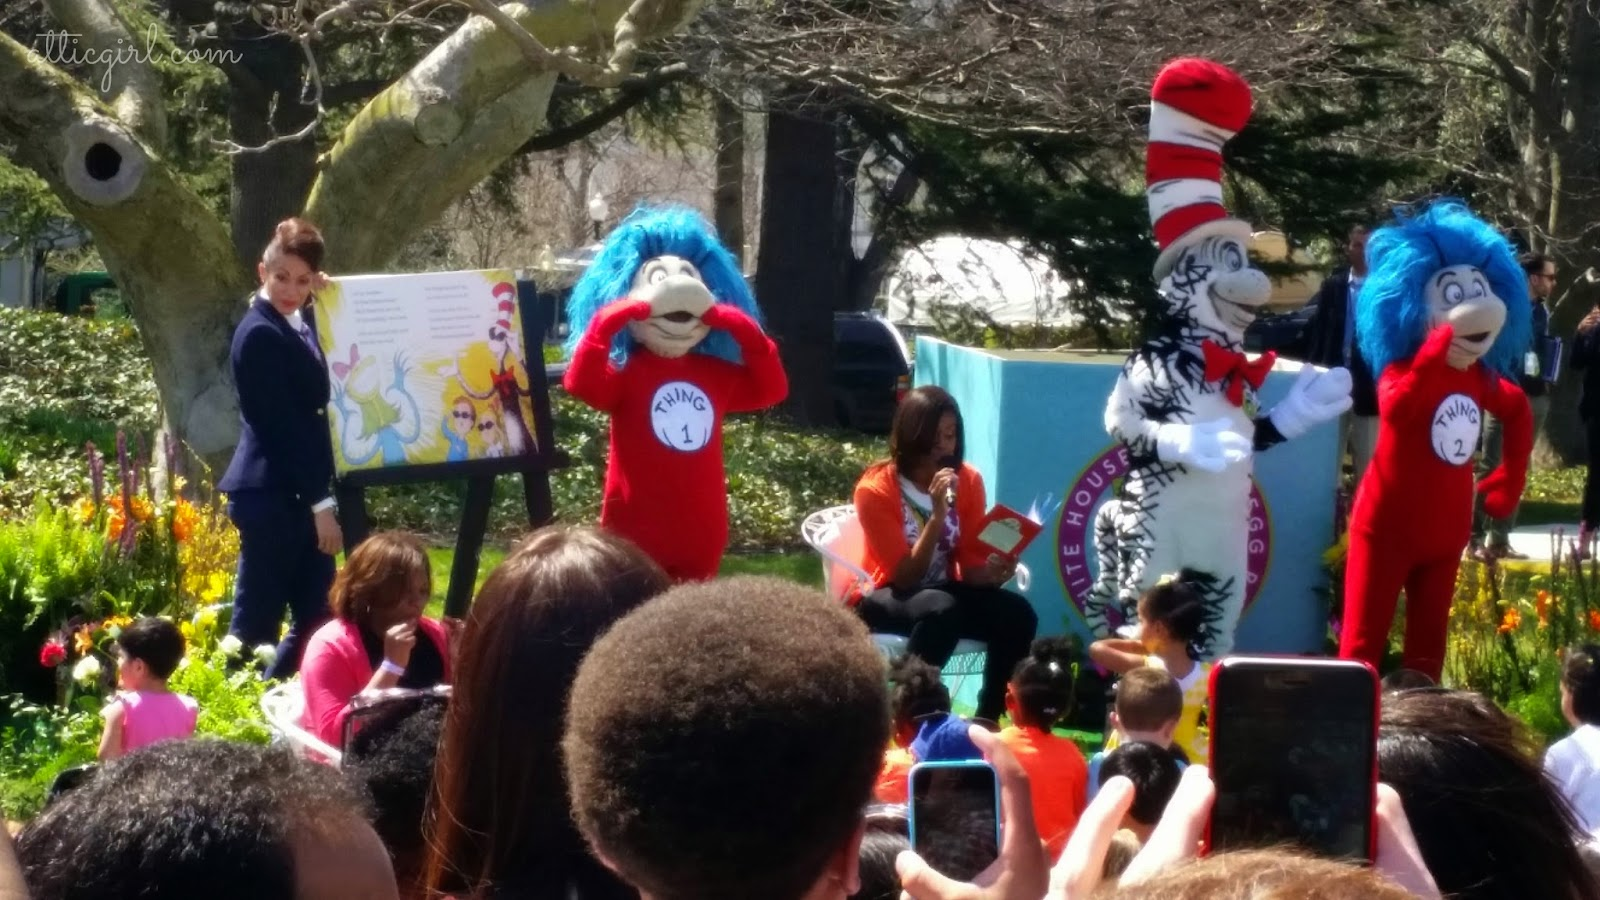 Mrs. Obama, The Cat & The Hat, Genevieve Goings, Thing 1 and Thing 2